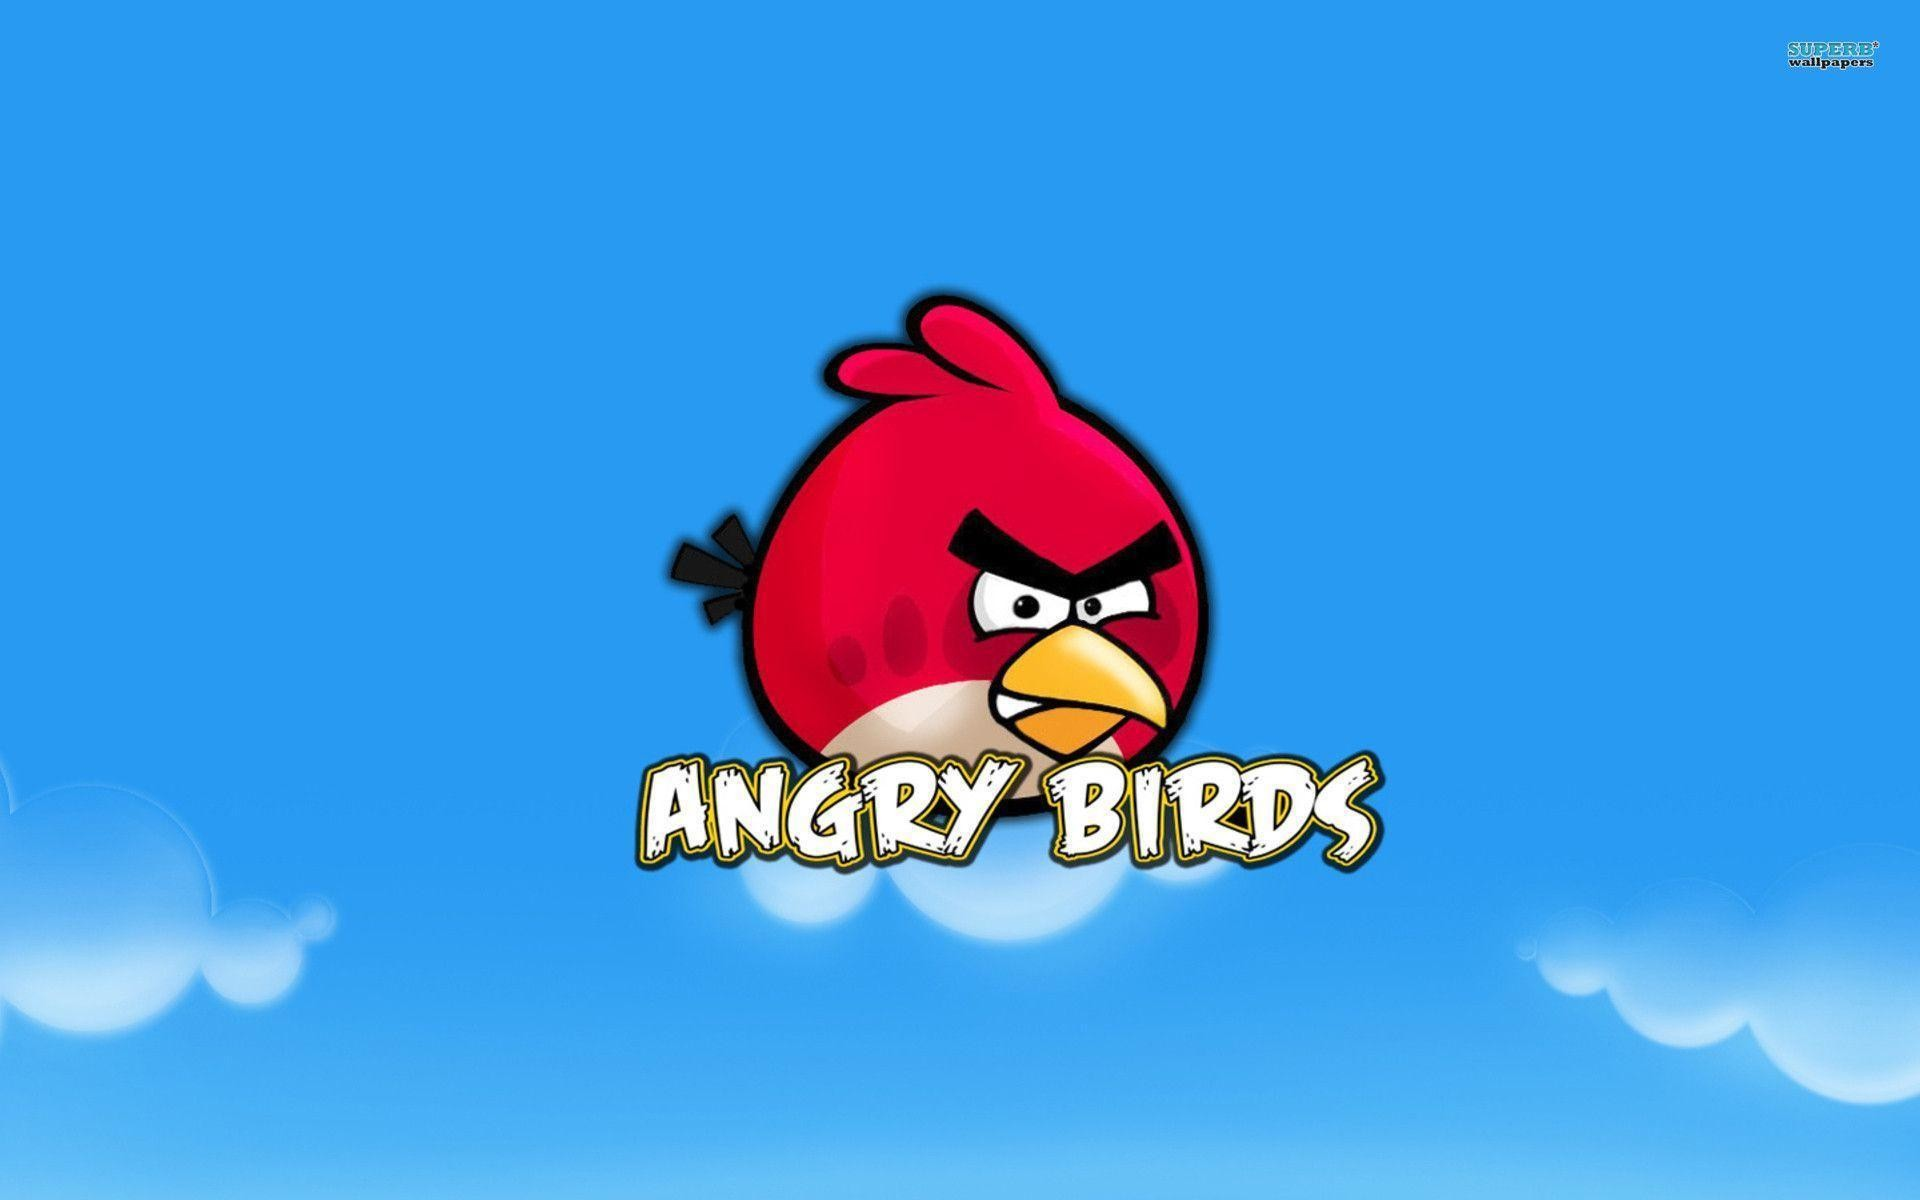 Res: 1920x1200, Angry Birds Toon Wallpaper | Wallpapers For Desktop and Mobile